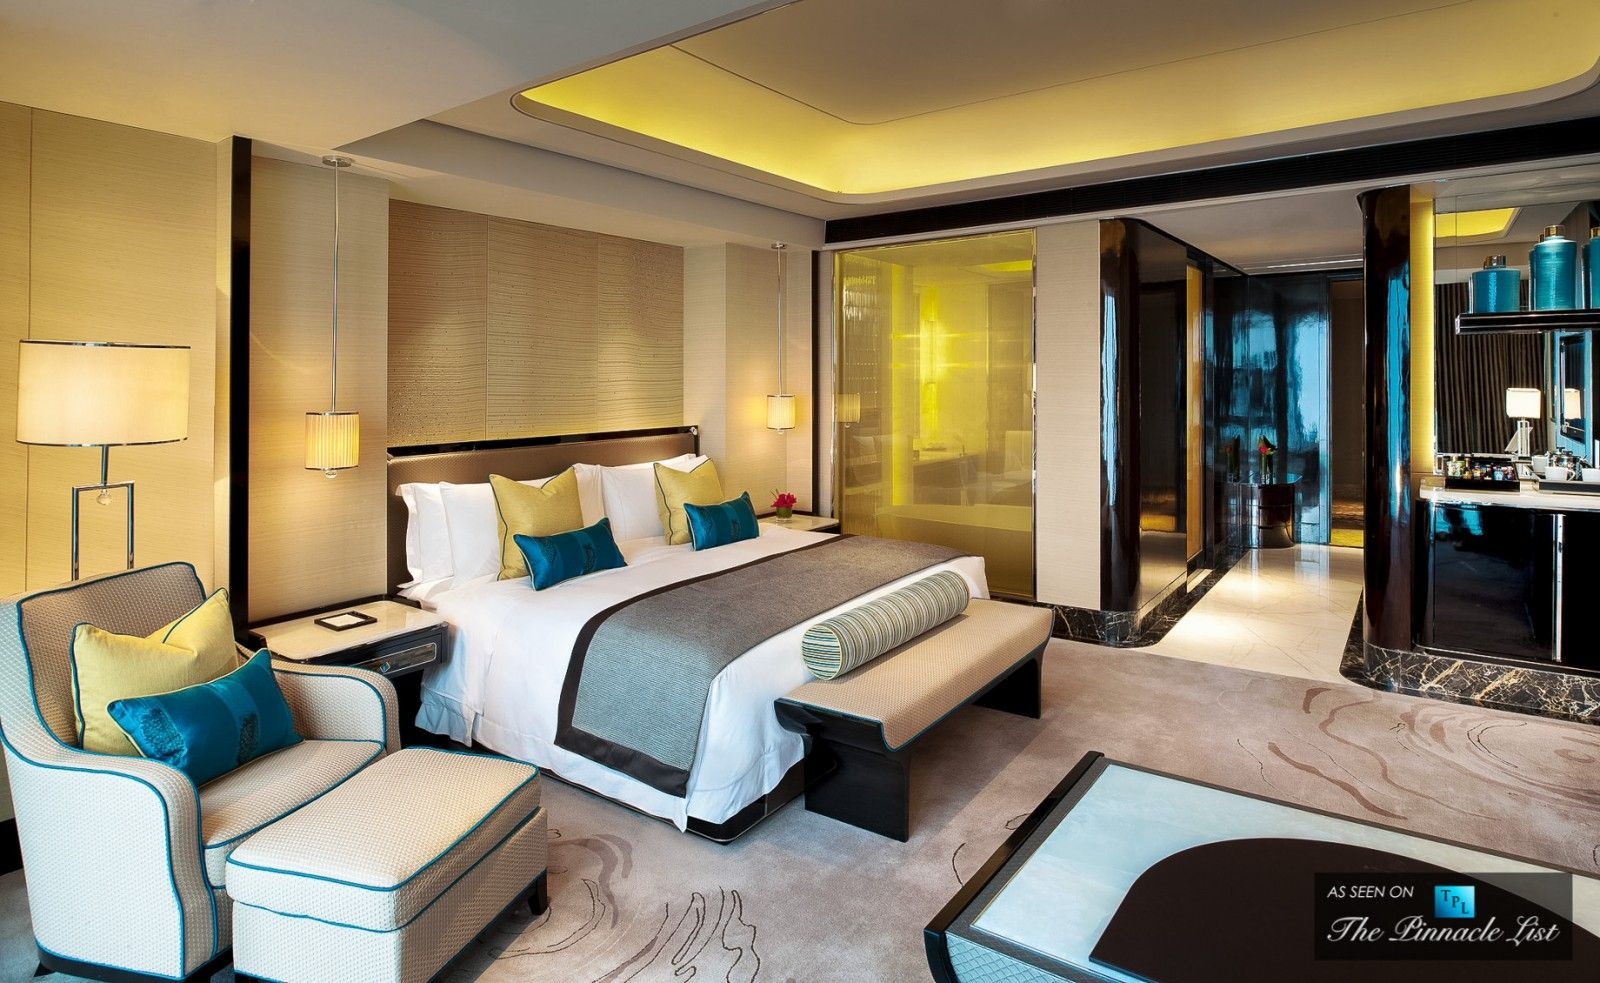 Comfort abounds in this hotel suite st regis luxury for Hotel suite design